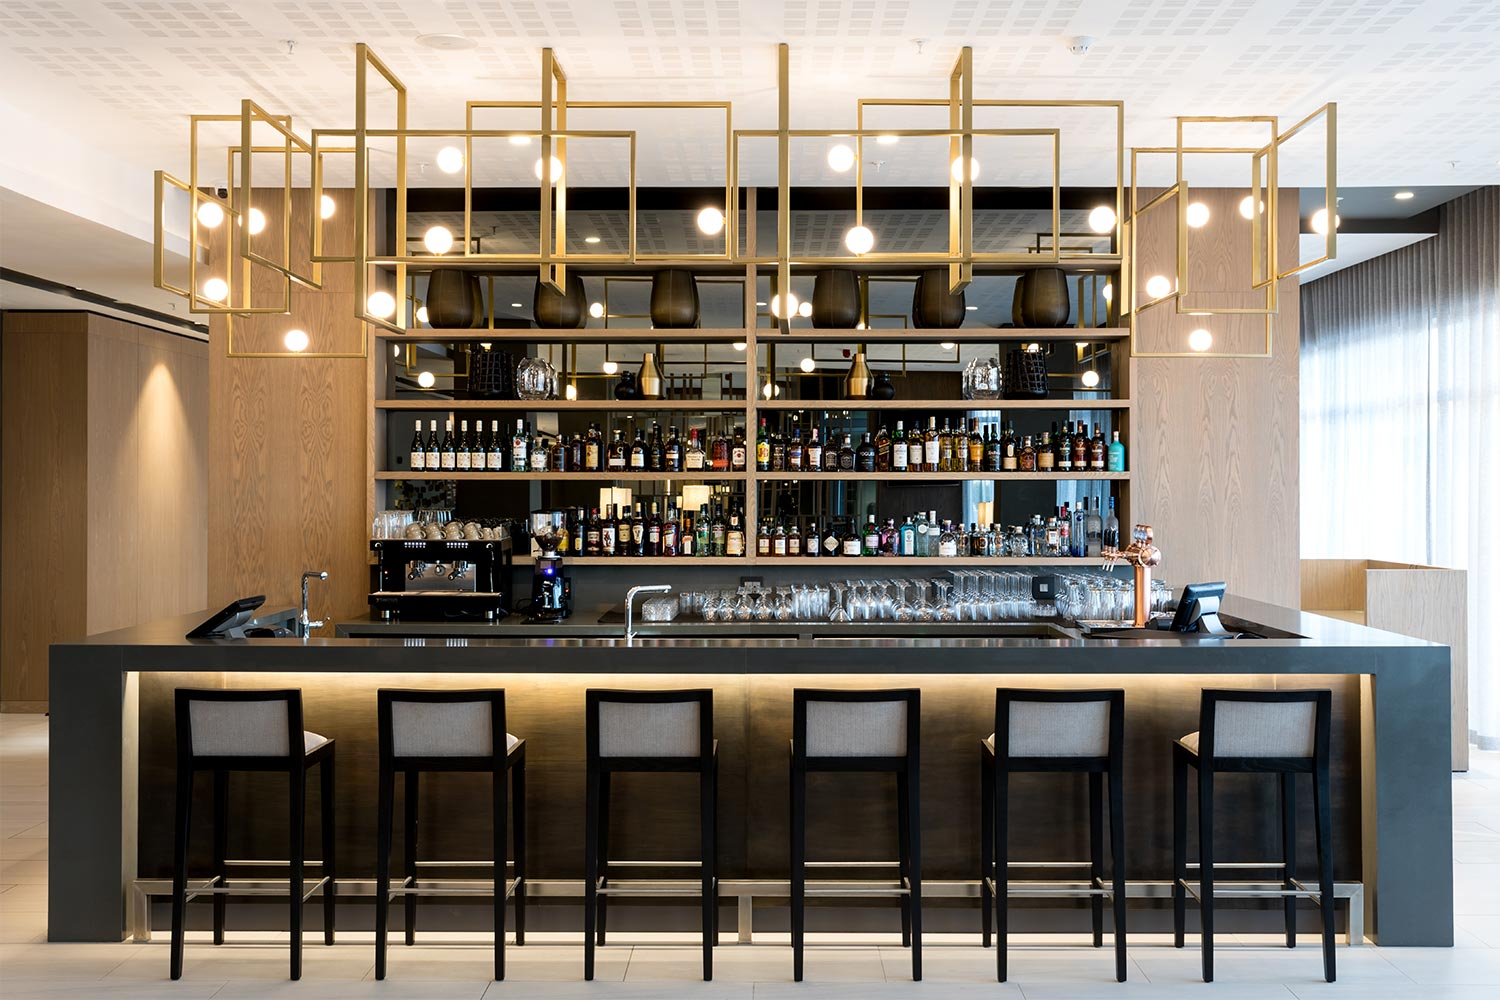 Have a drink at the hotel bar